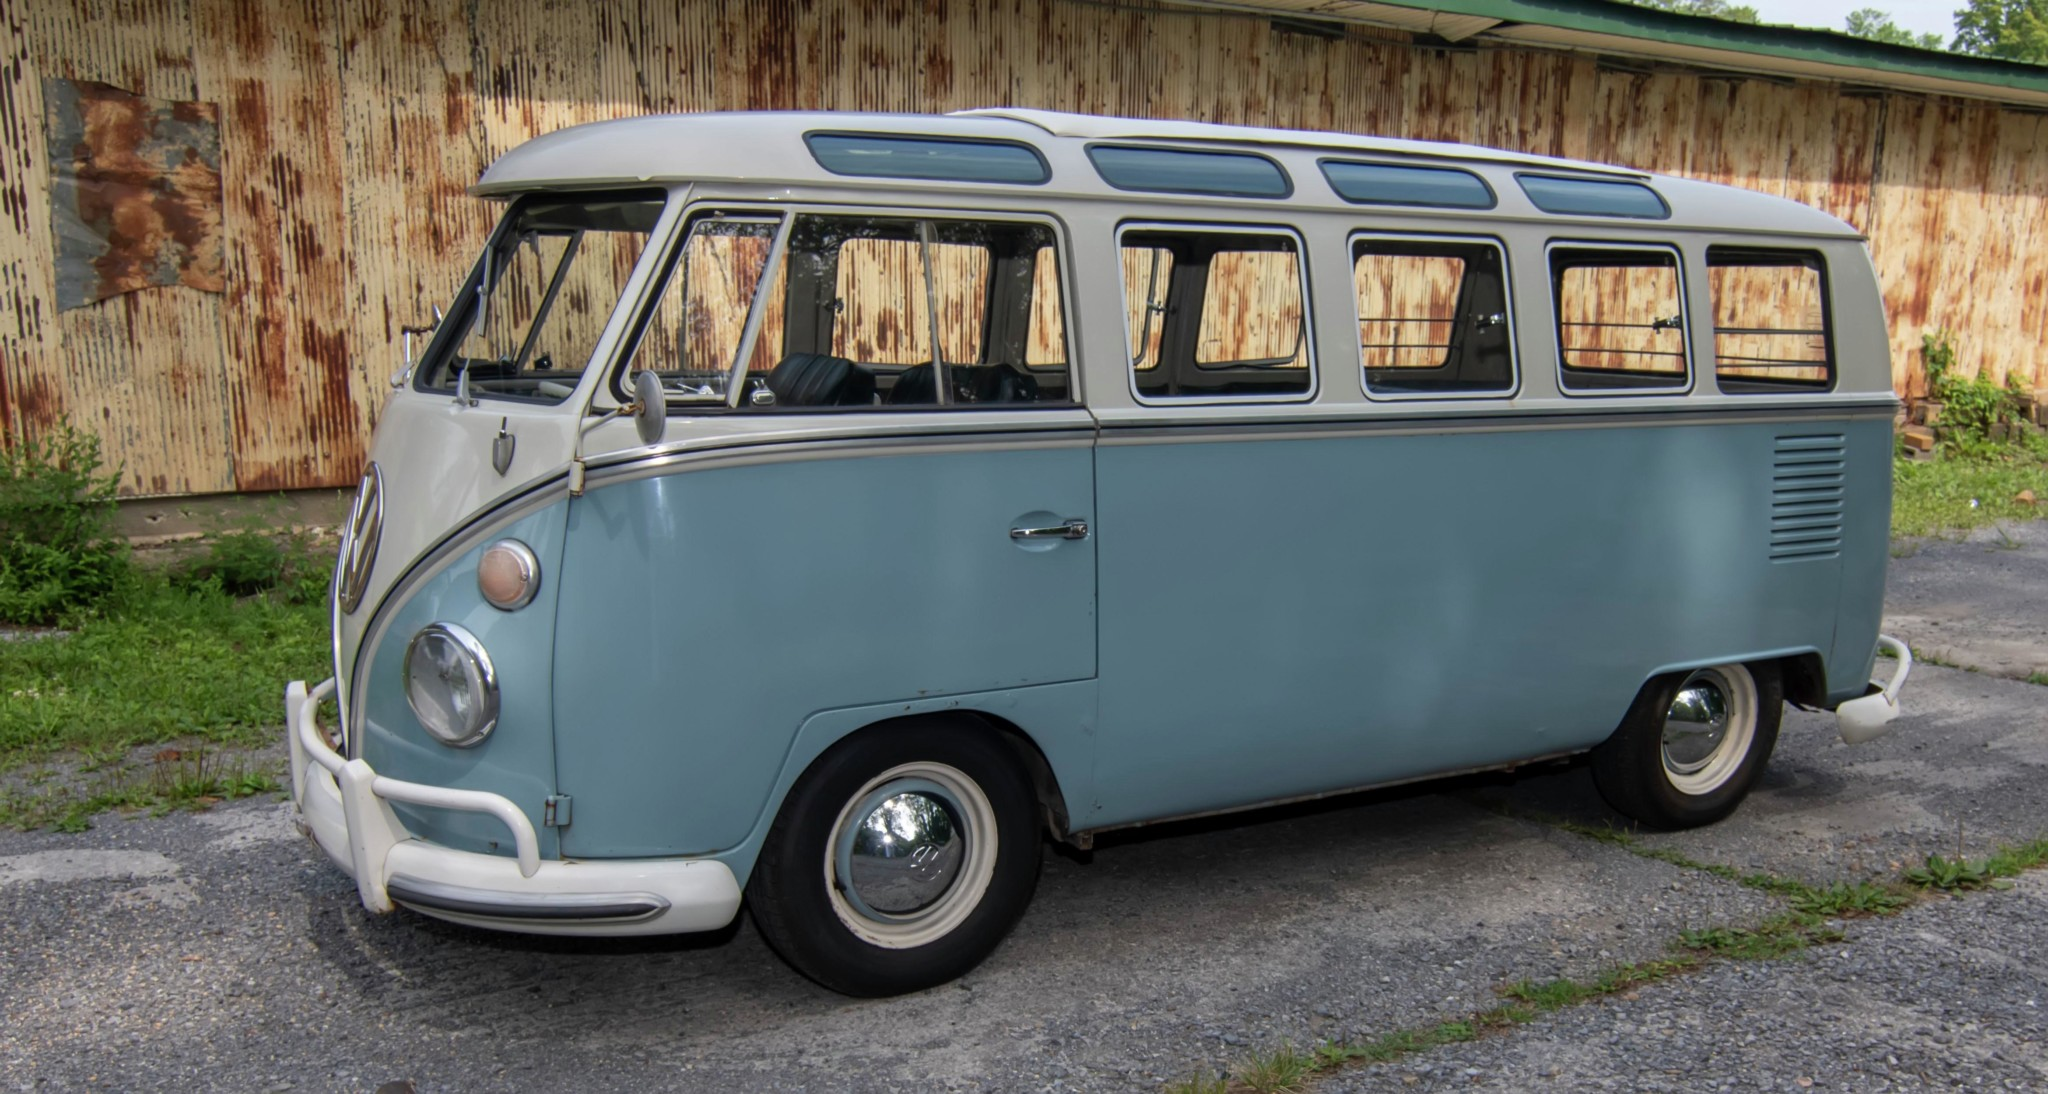 1967_volkswagen_bus_1565561289171800Bus-Full-View-5